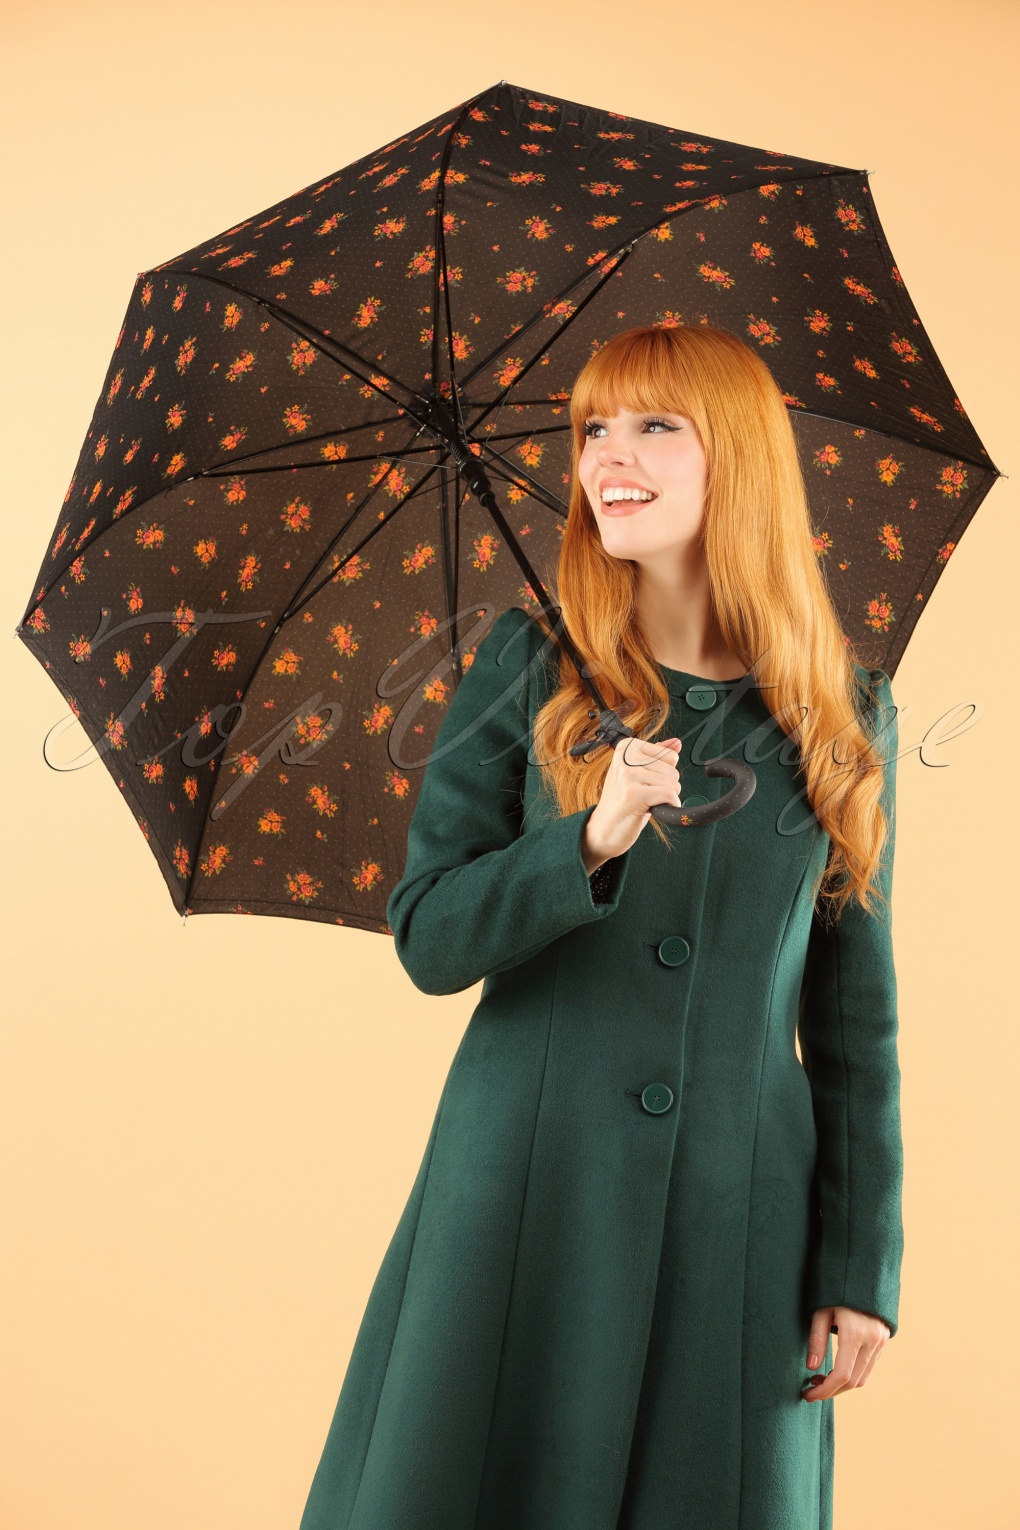 1960s Inspired Fashion: Recreate the Look 60s Retro Floral Umbrella in Black £13.21 AT vintagedancer.com